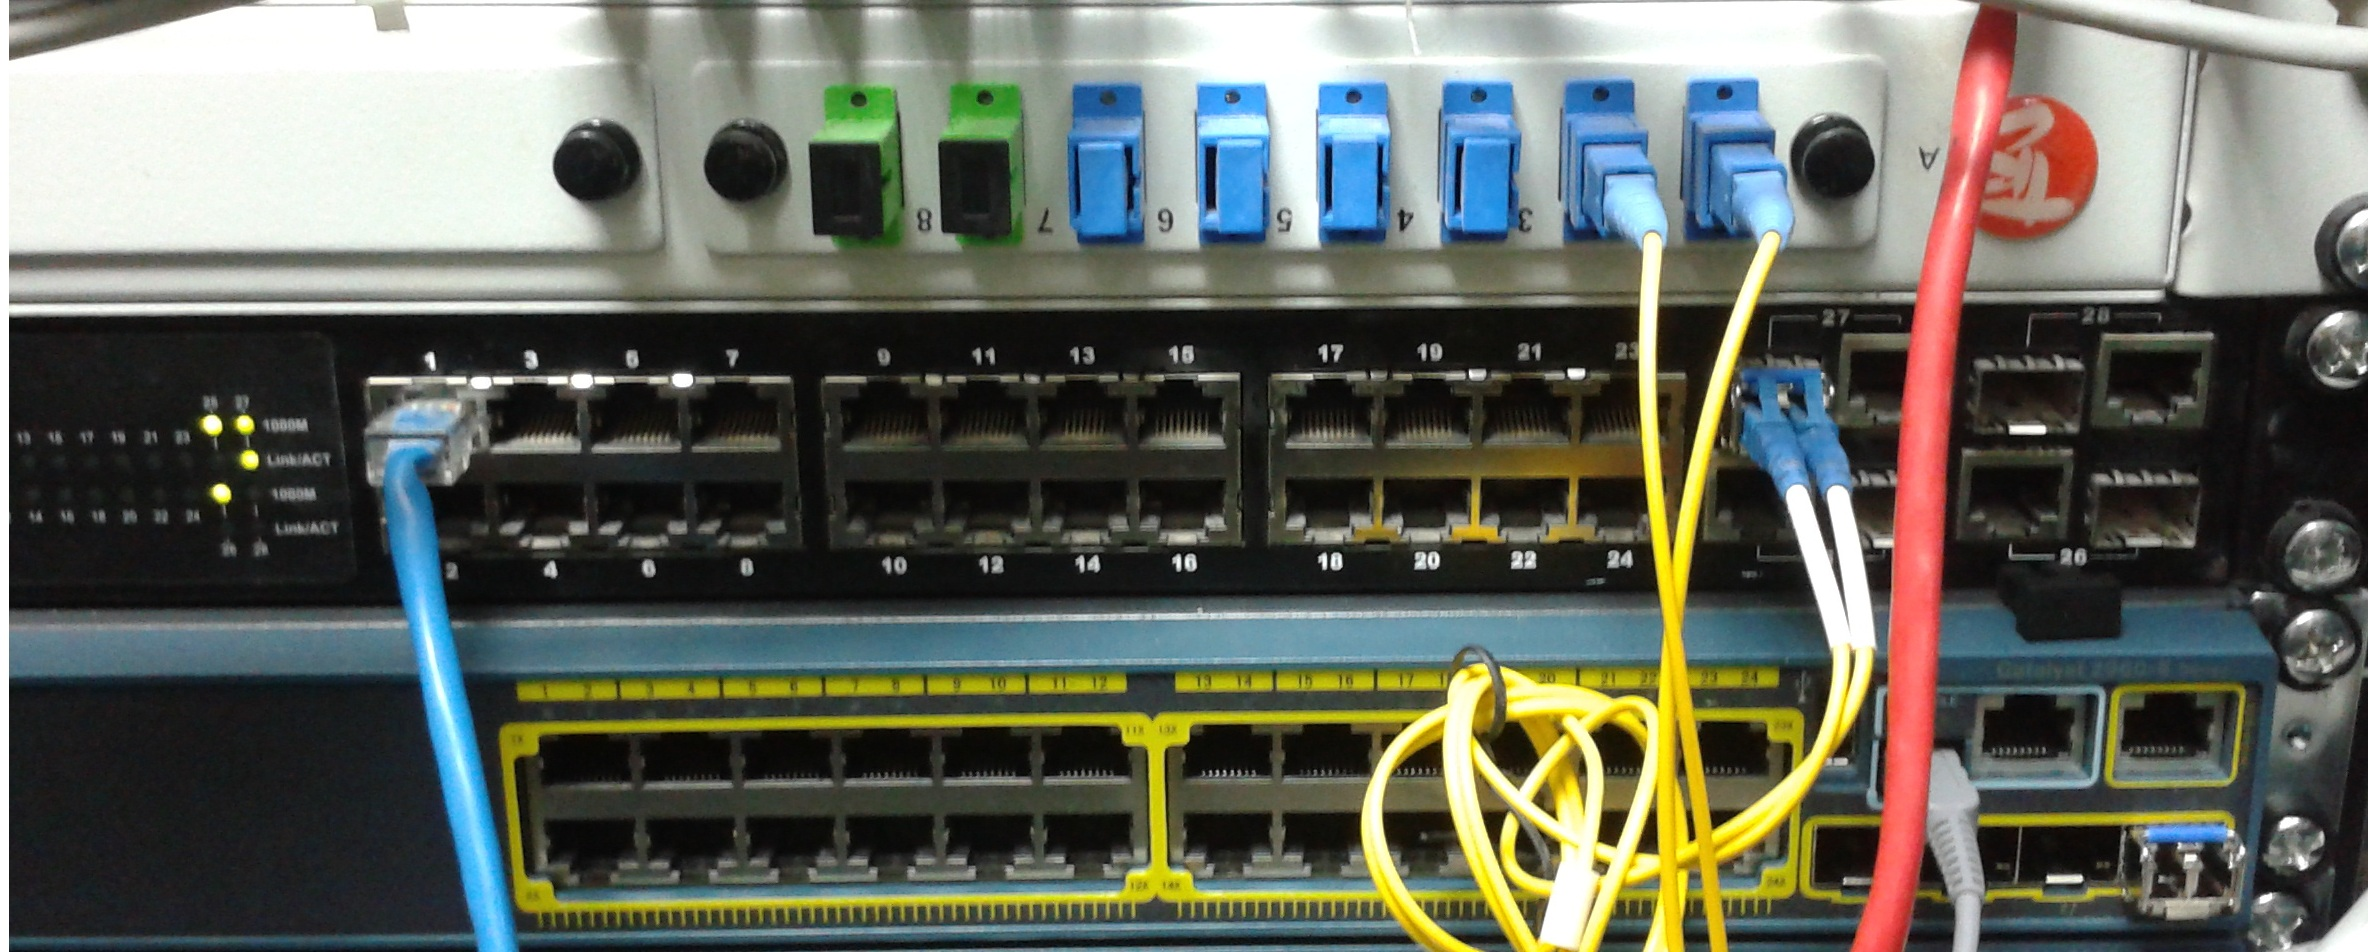 rj45 wiring diagram patch cable help with connection to fiber optic  cisco community  help with connection to fiber optic  cisco community